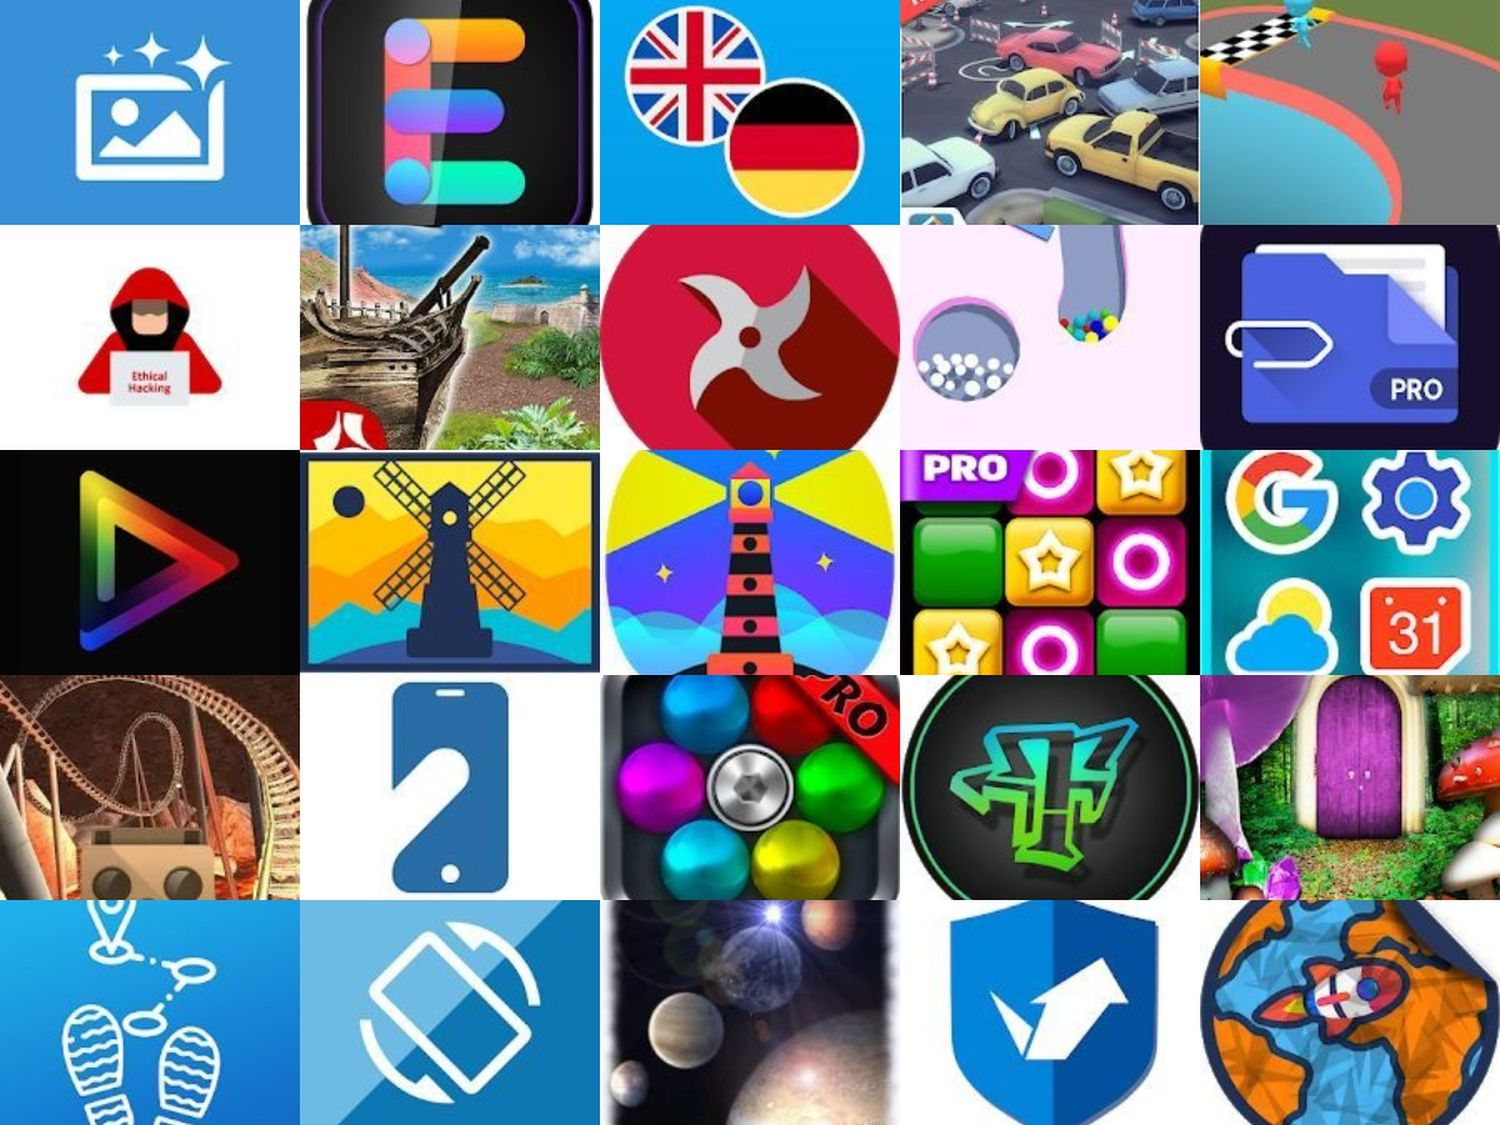 apps 02.08.2020